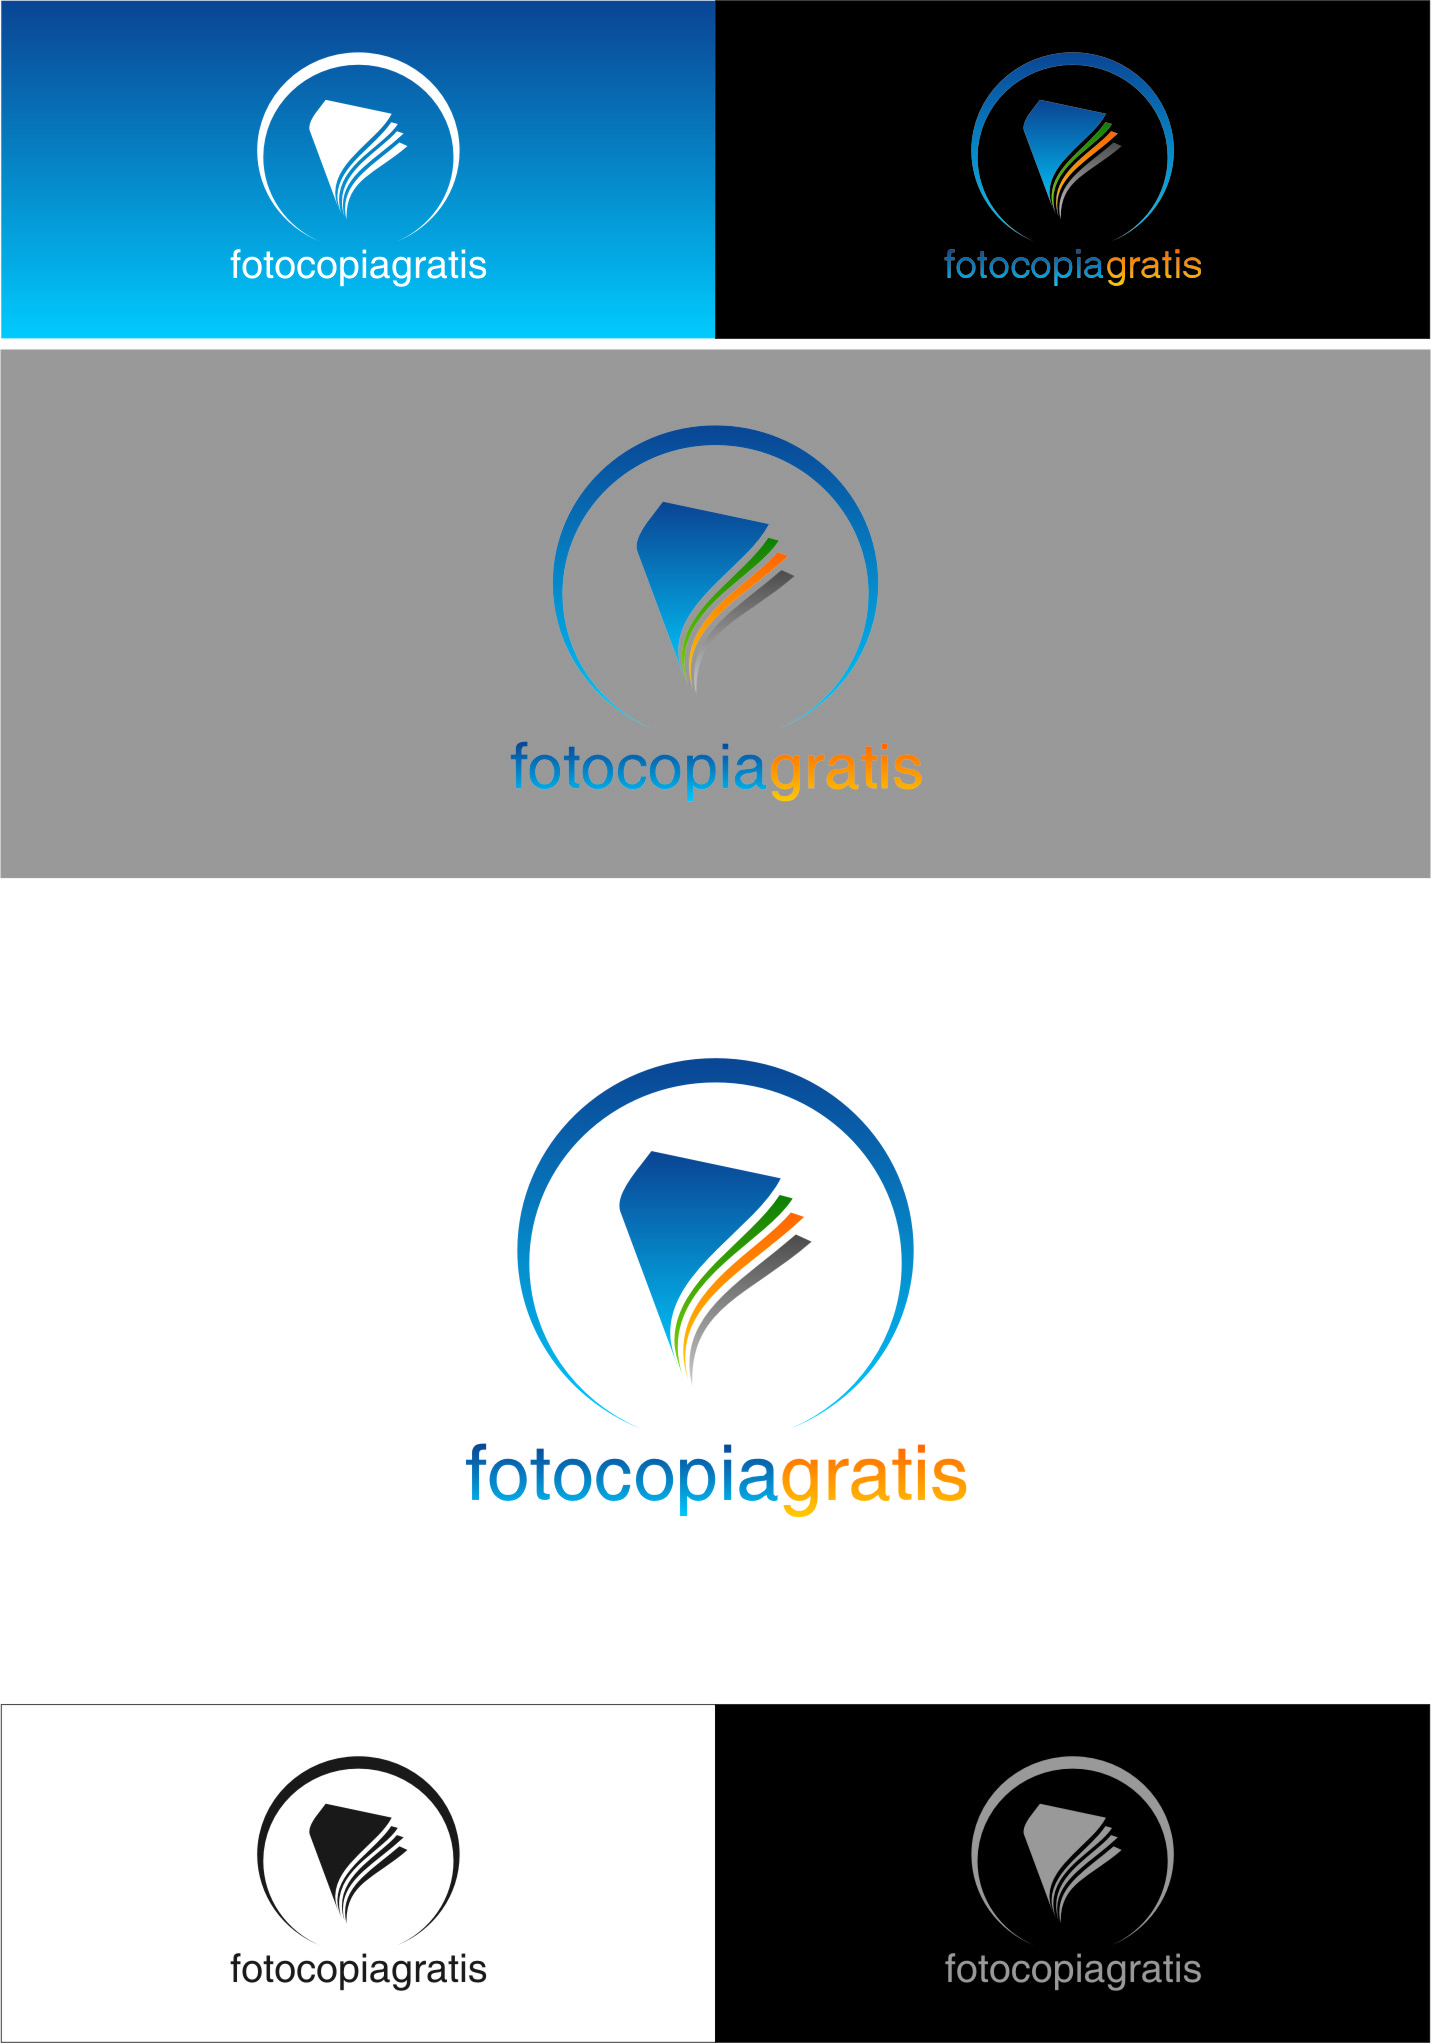 Logo Design by RasYa Muhammad Athaya - Entry No. 80 in the Logo Design Contest Inspiring Logo Design for Fotocopiagratis.